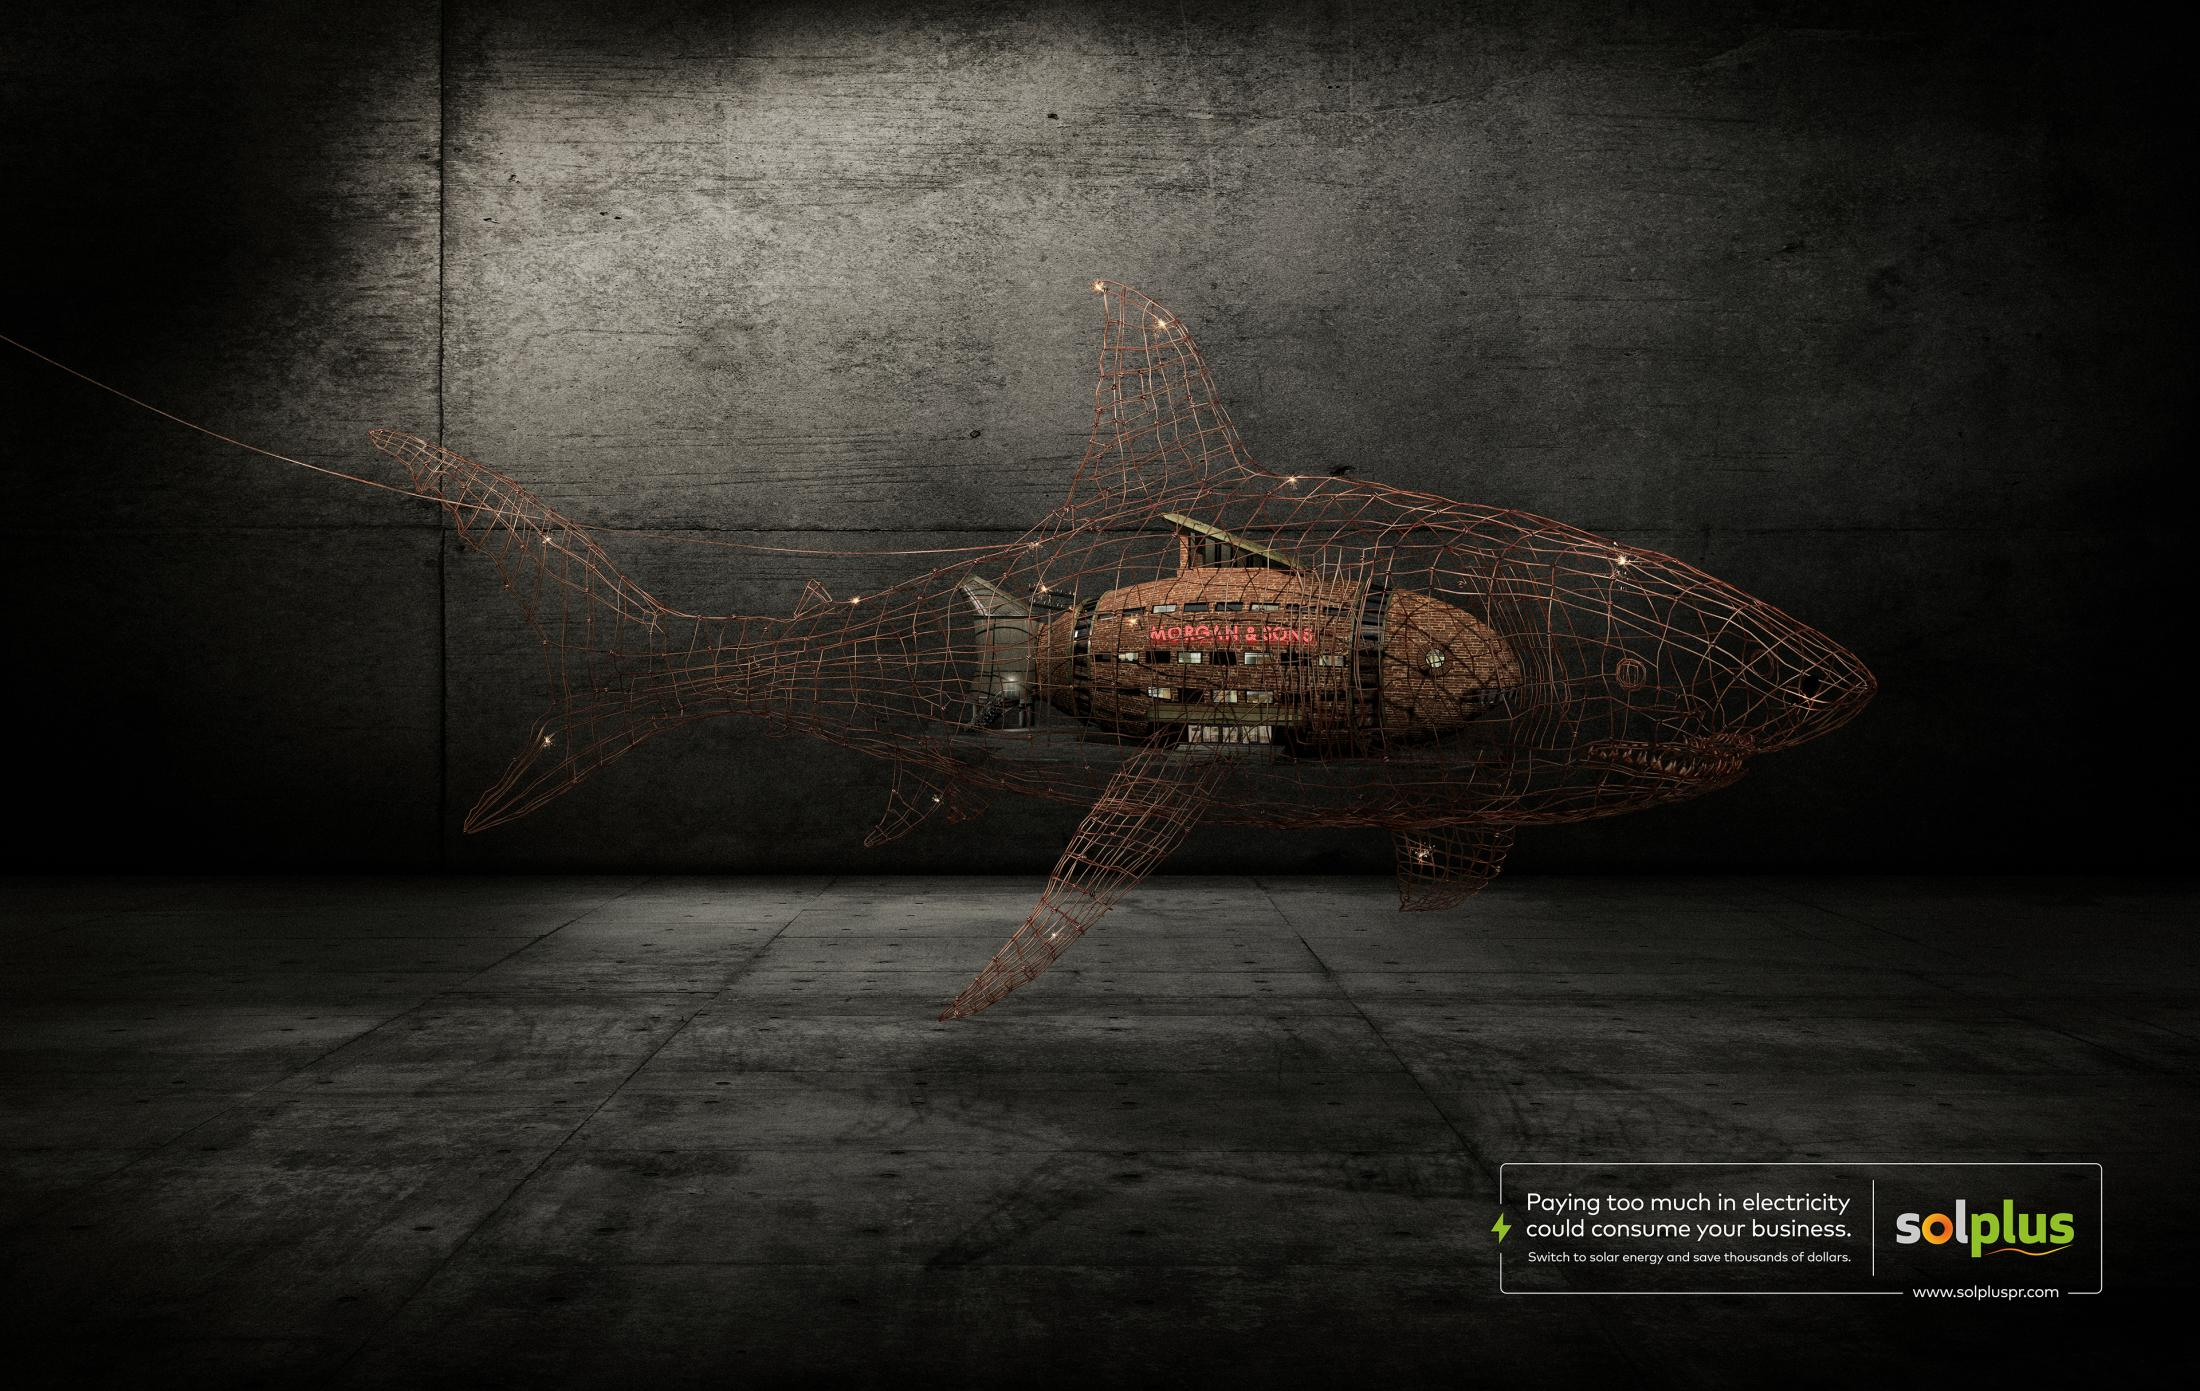 Solplus Print Ad - Electric Shark